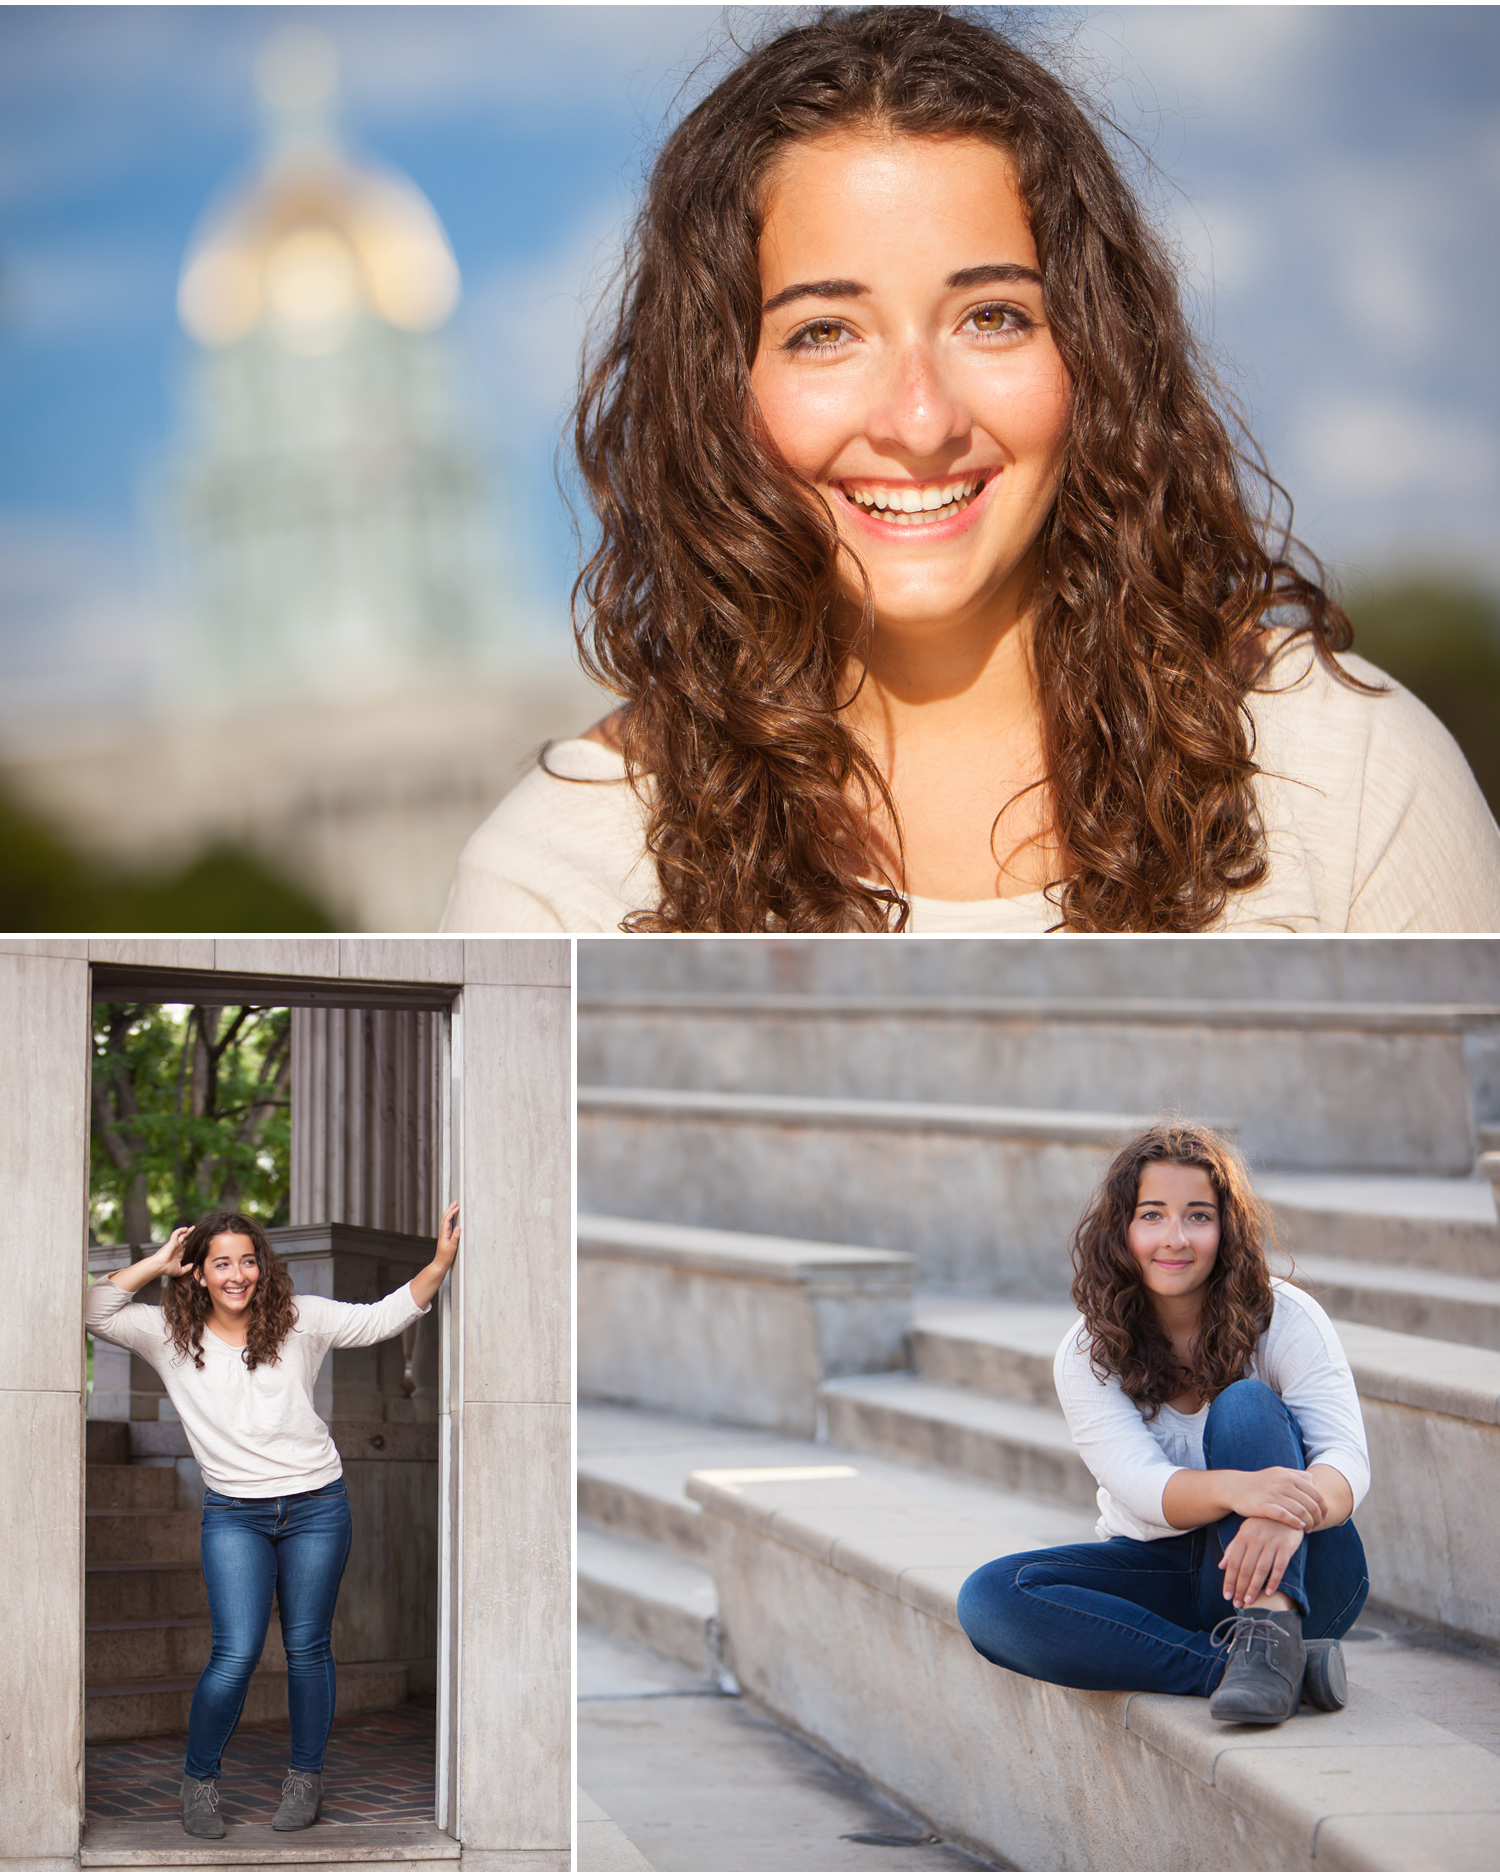 Natural Light Senior Pictures in Denver with photographer Jennifer Koskinen of Merritt Portrait Studio